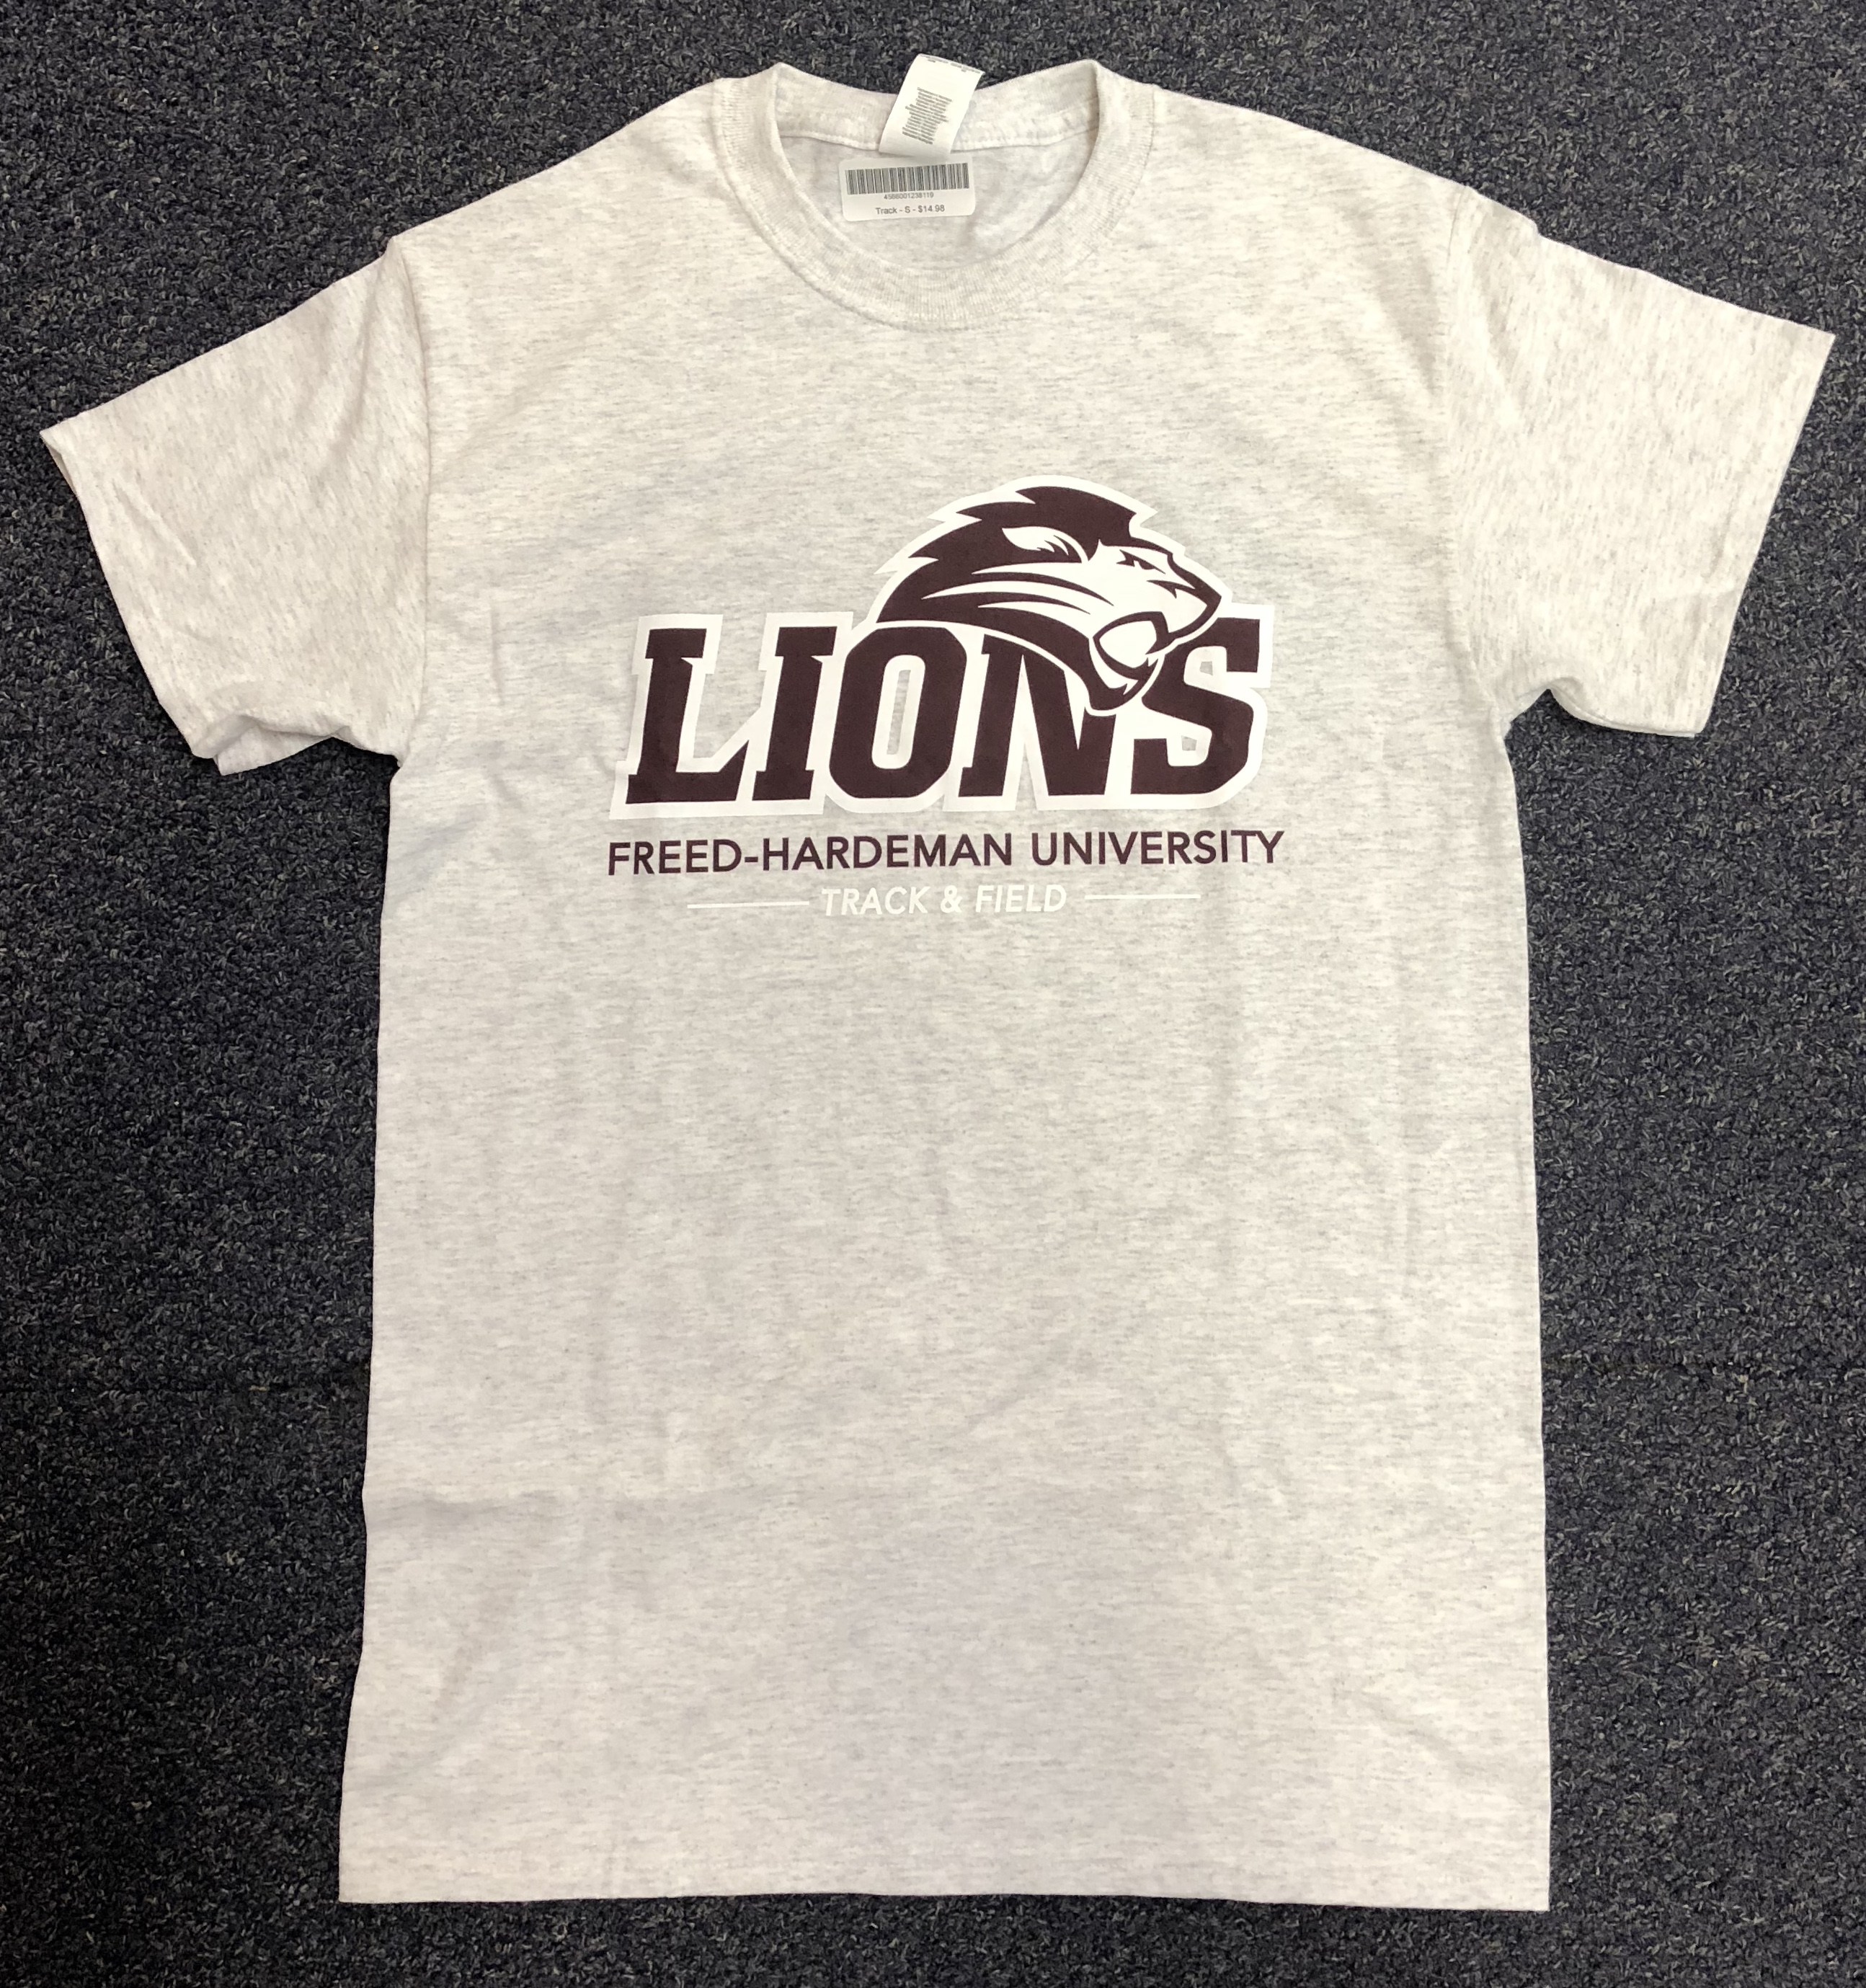 Lions Track & Field Tee